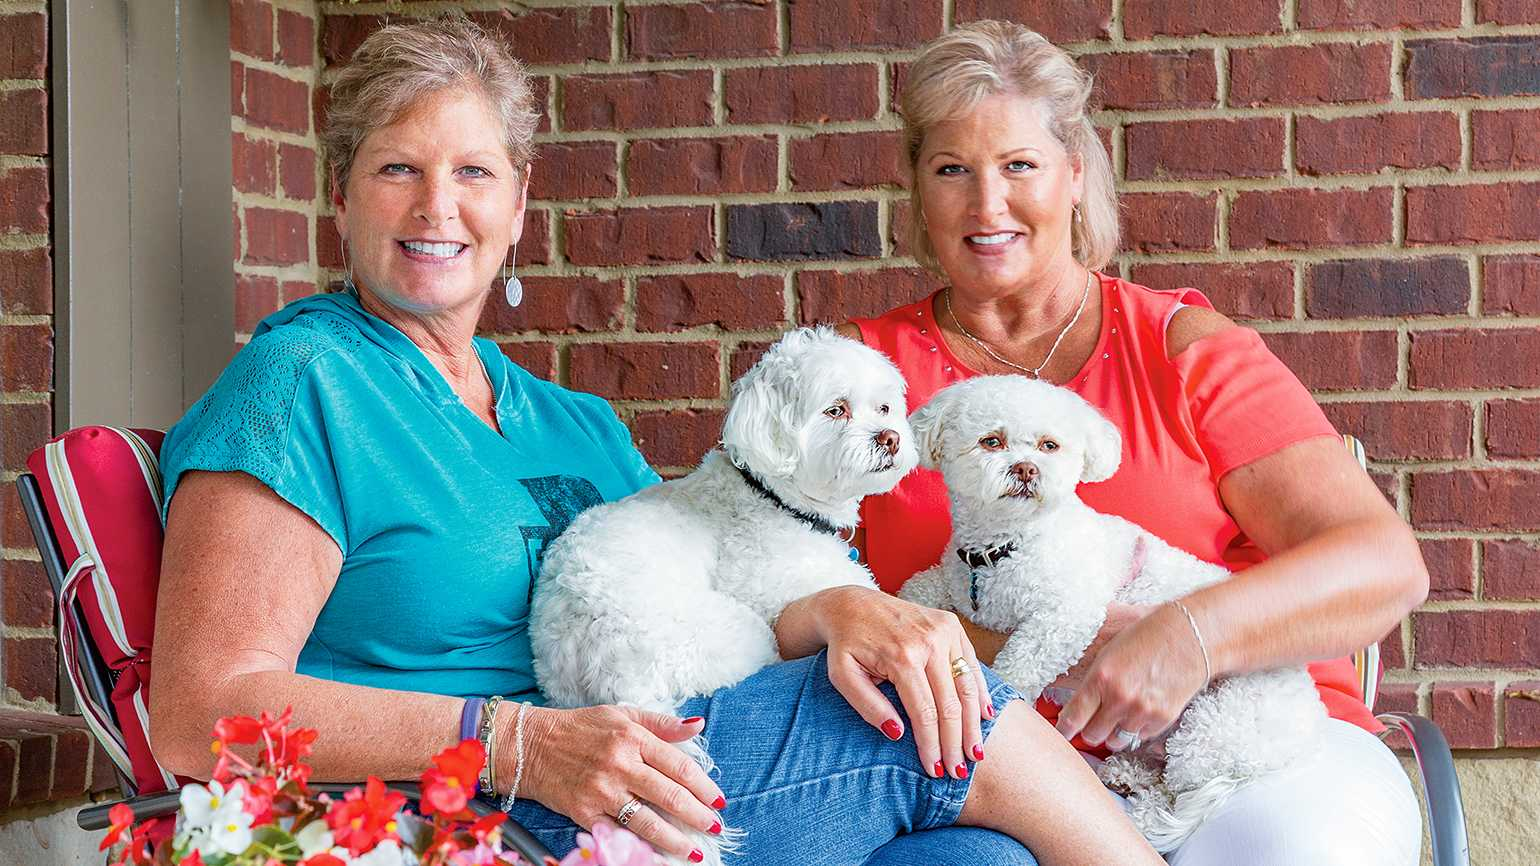 Kim (in red) with her sister, Karen, and their dogs, Cooper and Bentley